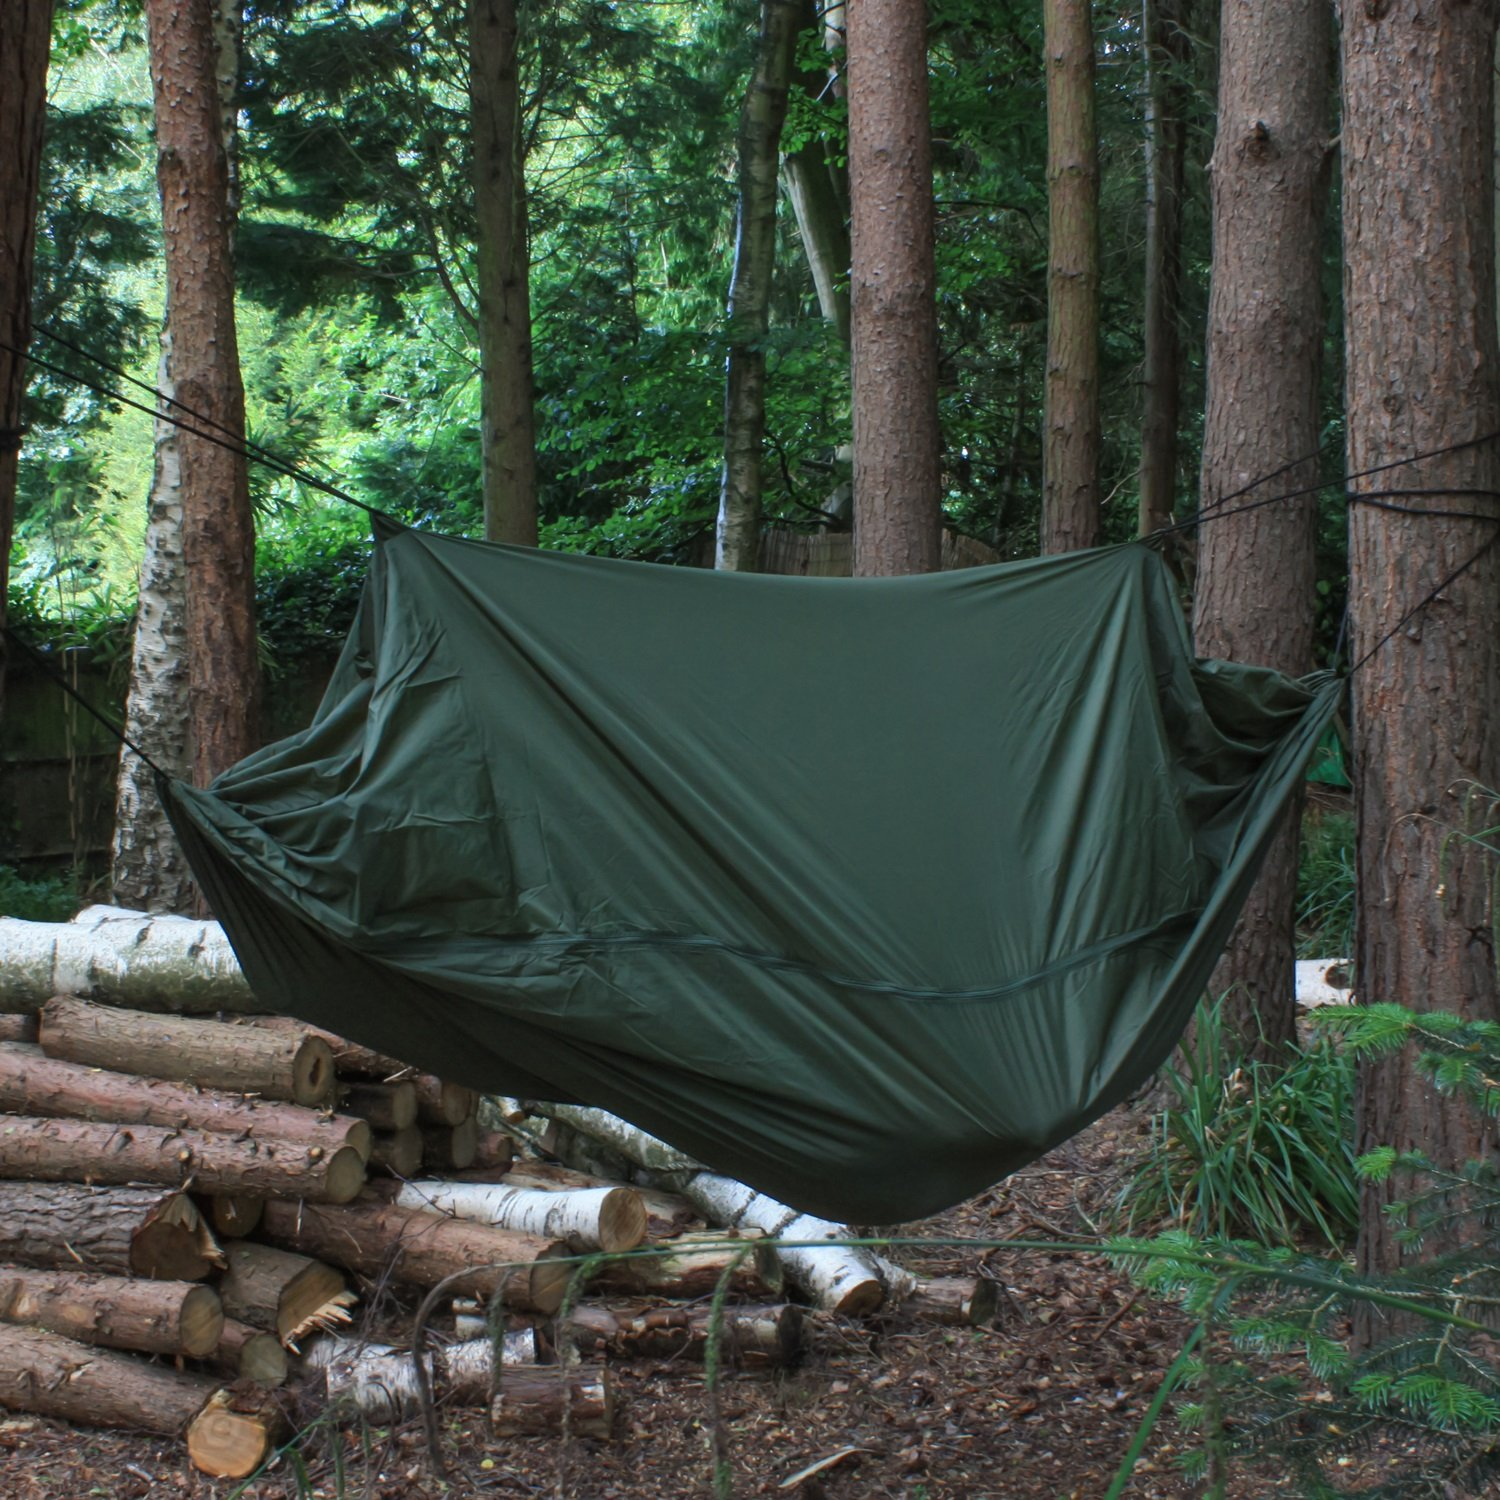 Andes Camping Jungle Hammock Hiking Military Survival Bushcraft Gear